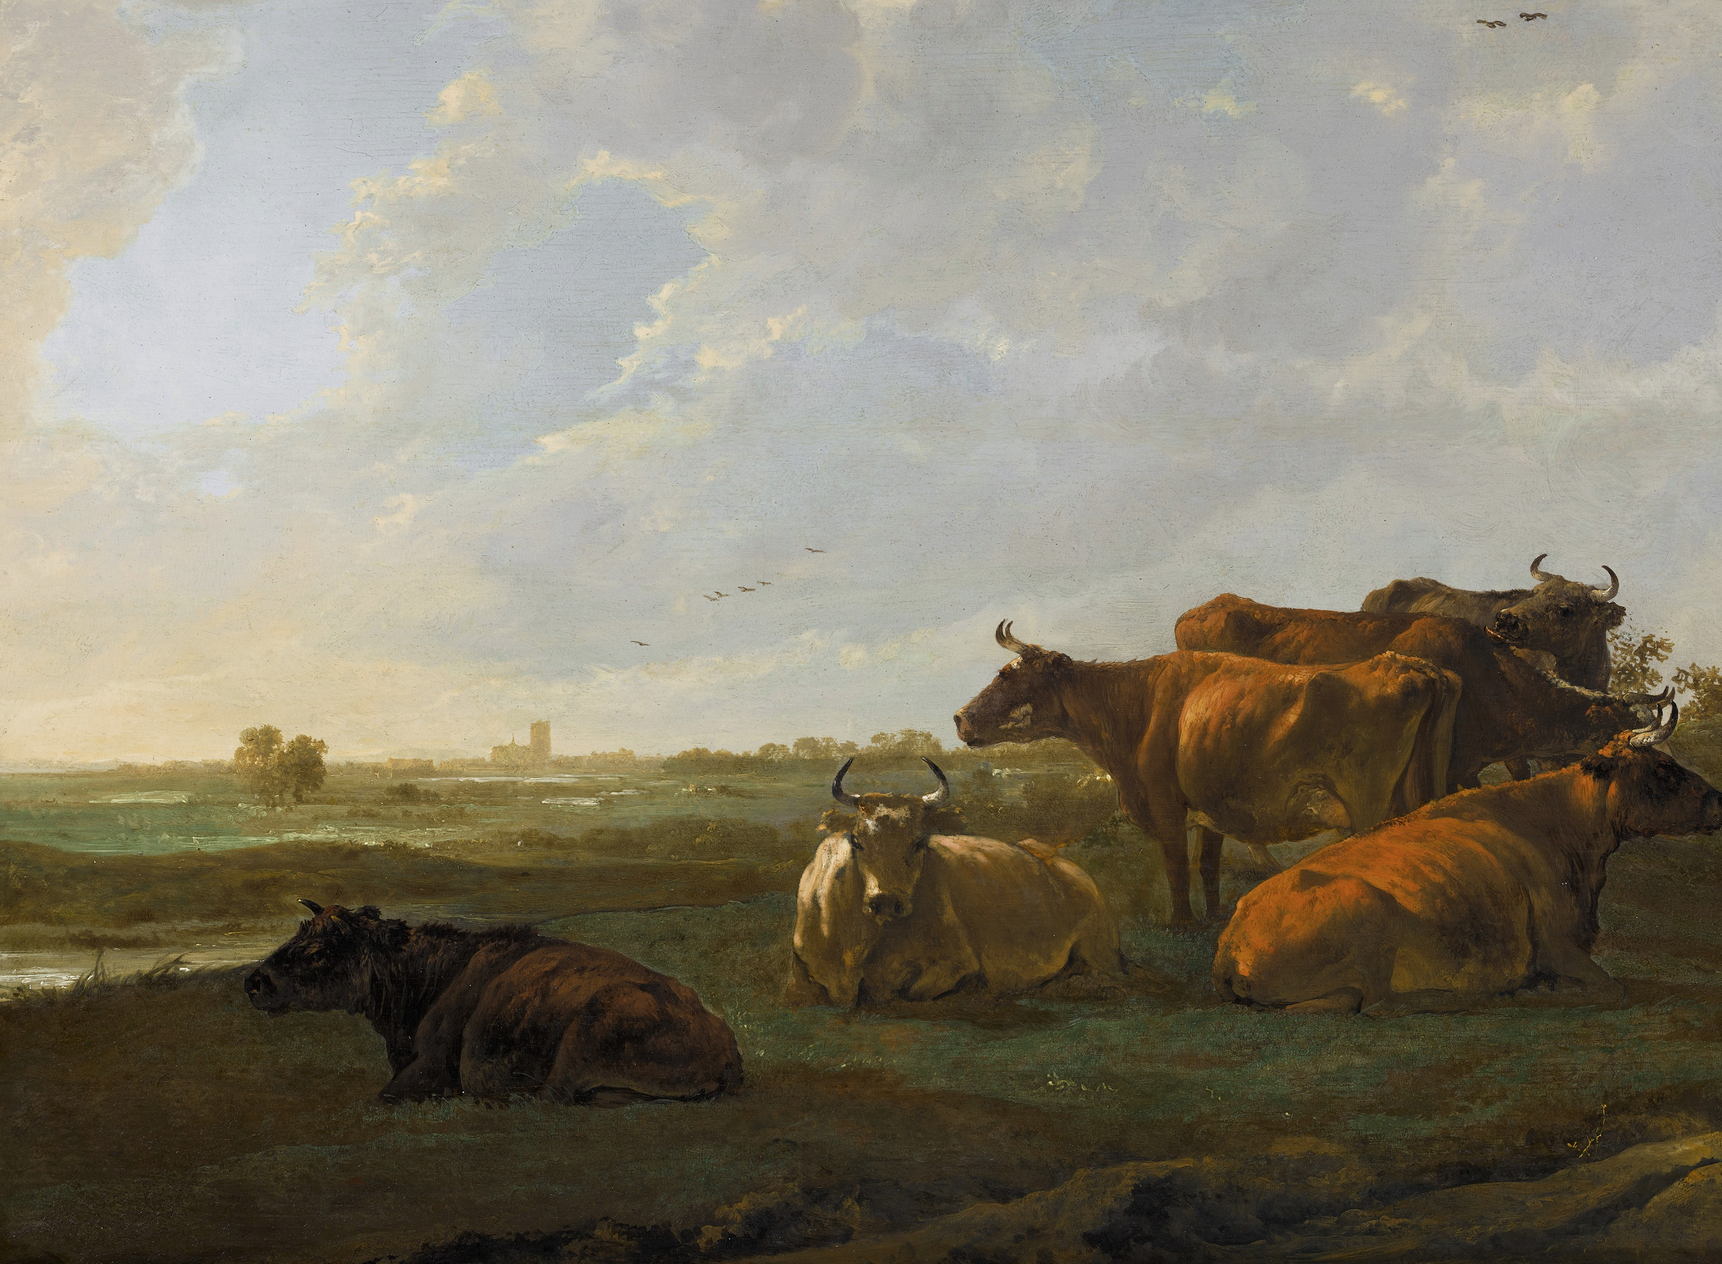 Landscape with cattle grazing on a bank by artist Aelbert Cuyp